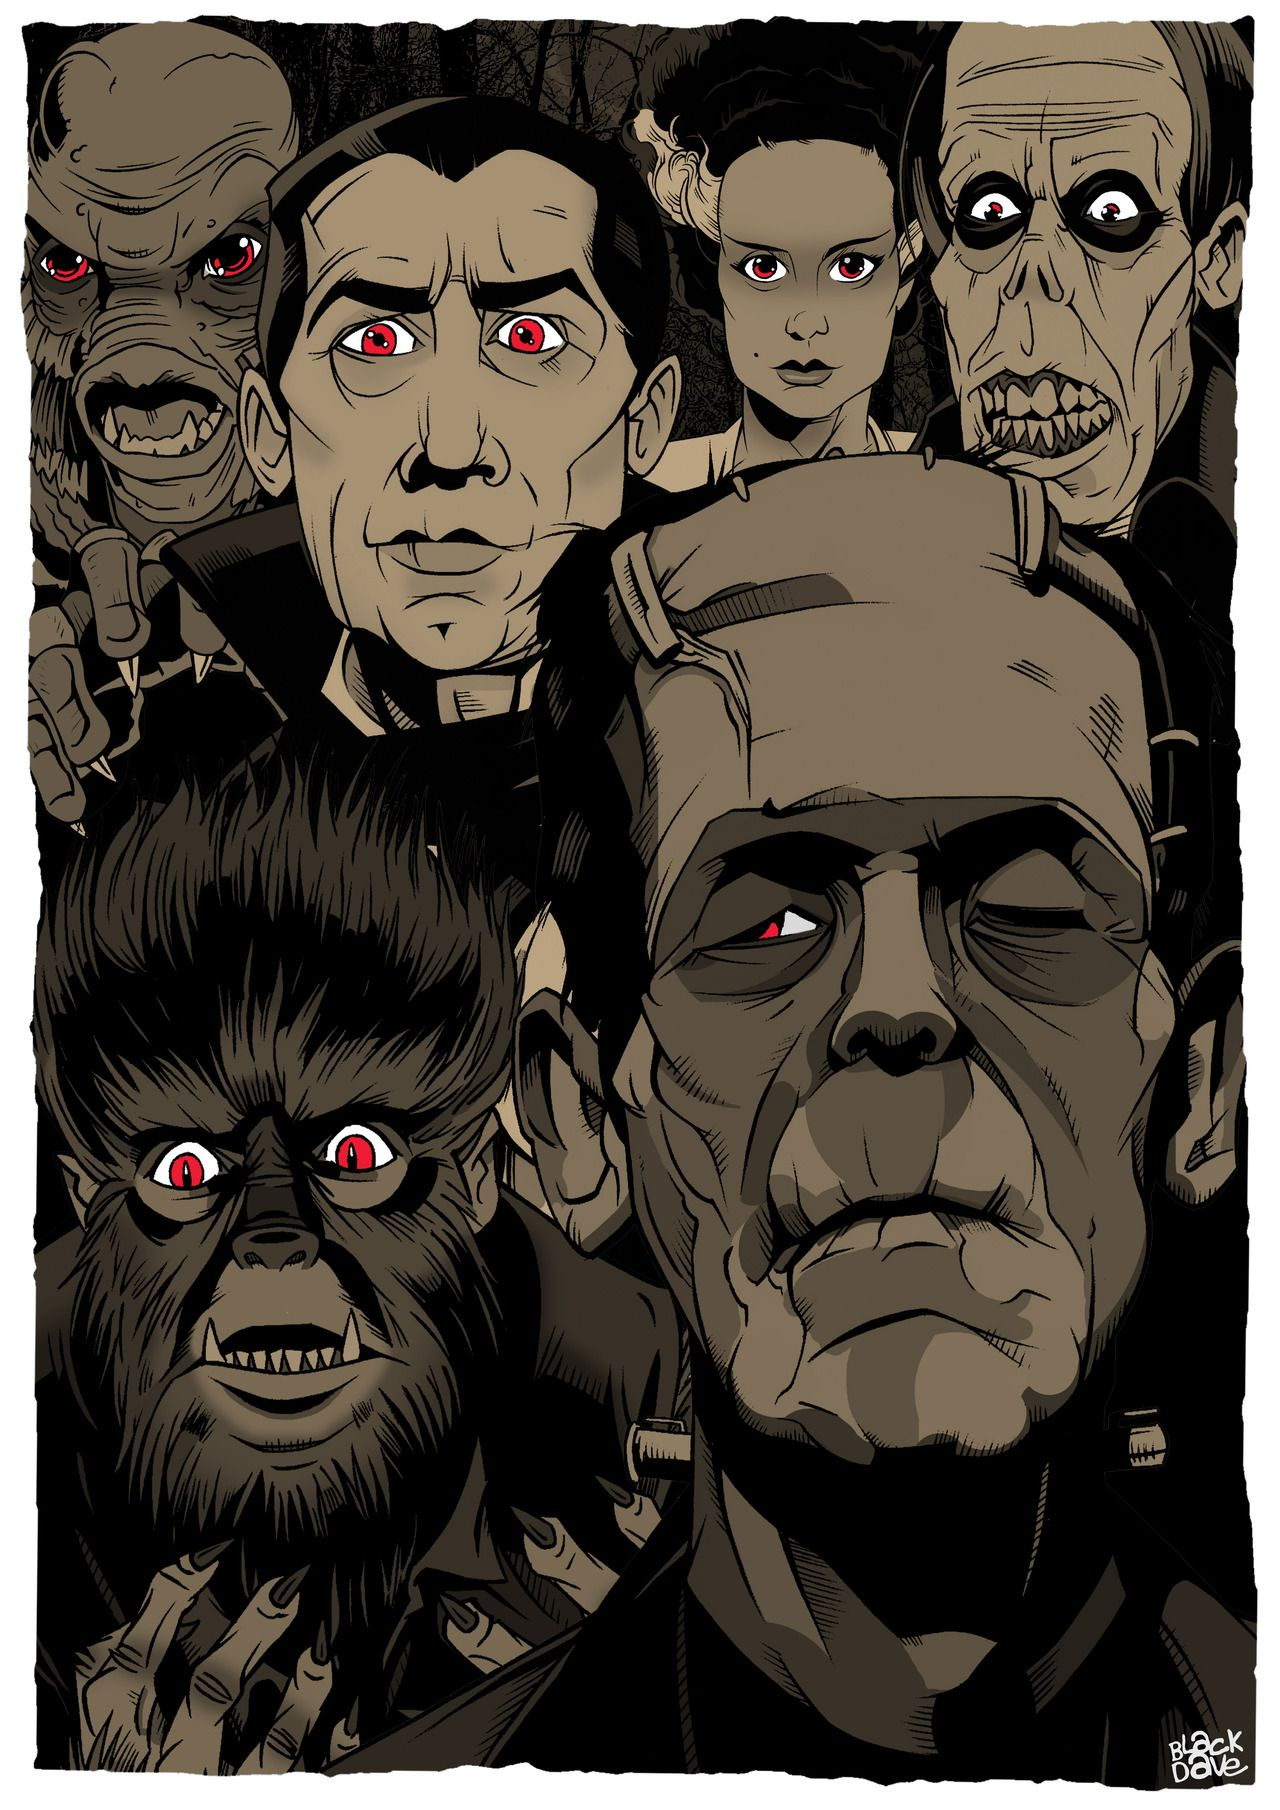 Pin By Stacey Sammons On Horror